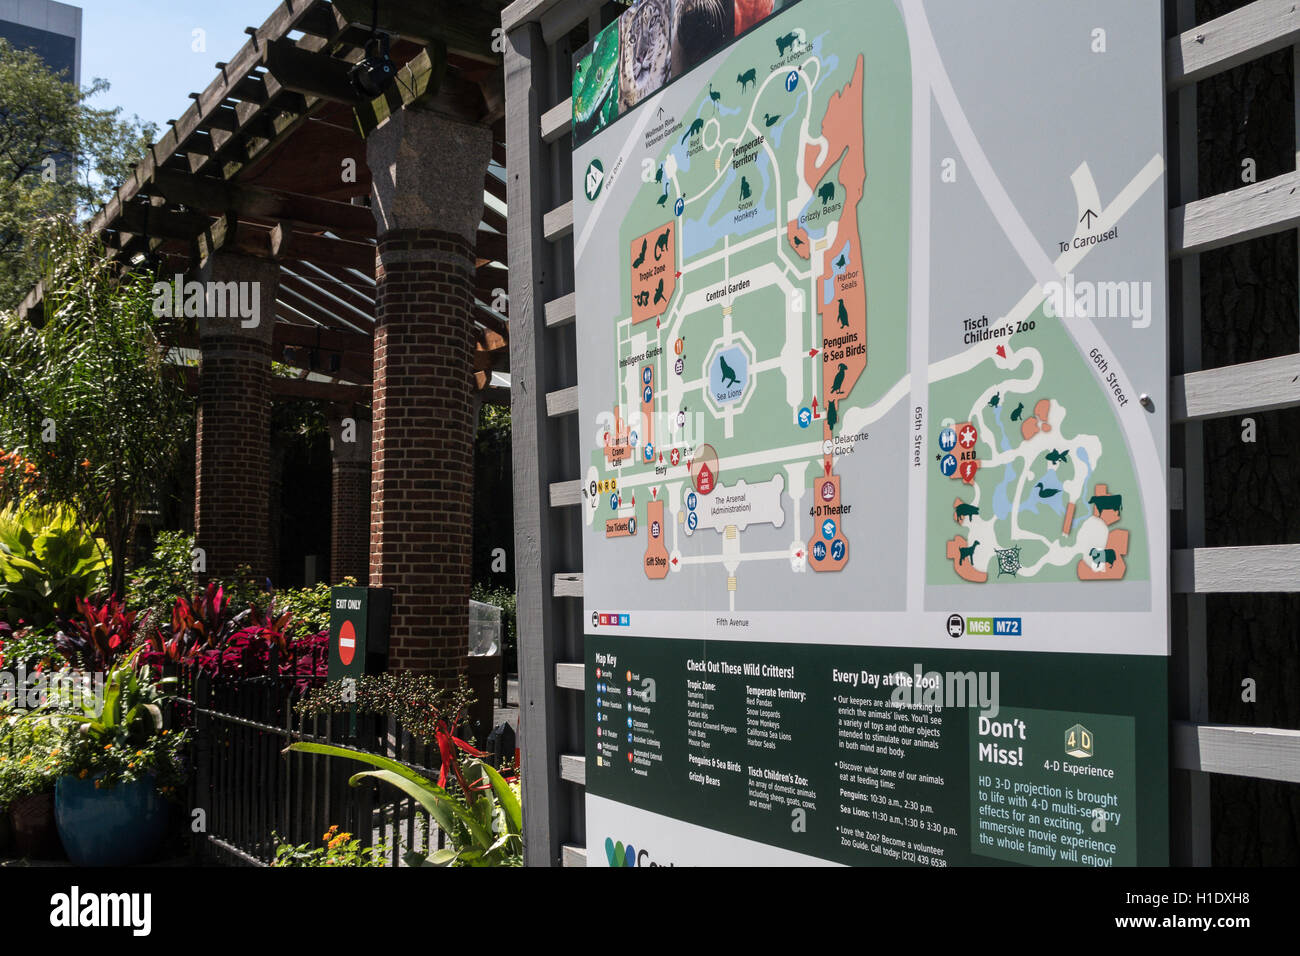 central park zoo map nyc usa stock photo 121393476 alamy. Black Bedroom Furniture Sets. Home Design Ideas